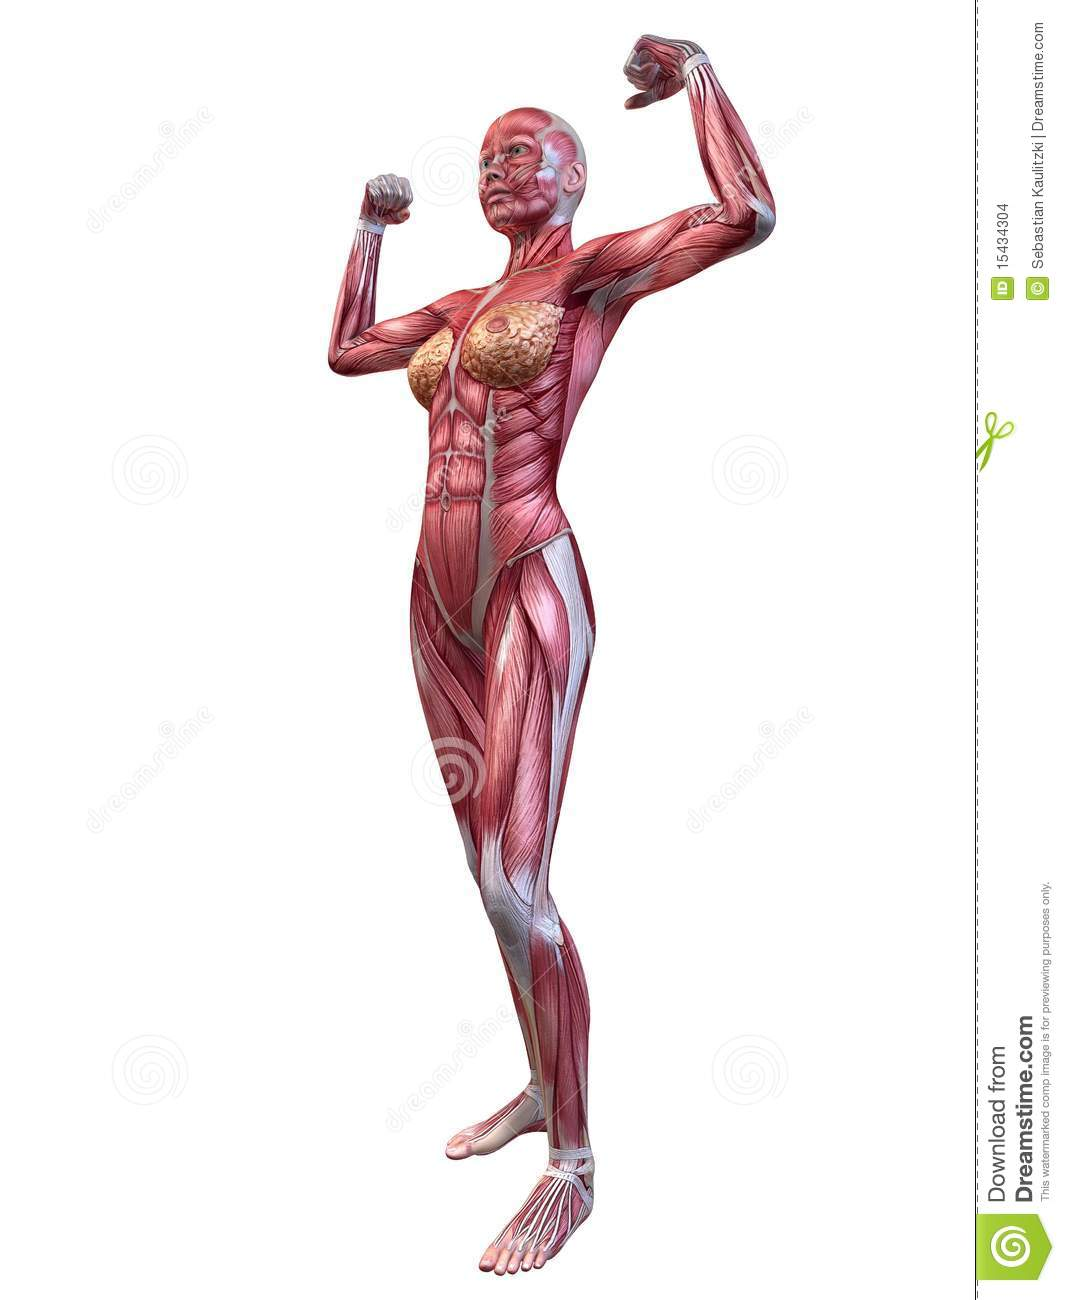 Female muscular system stock illustration. Illustration of pose ...